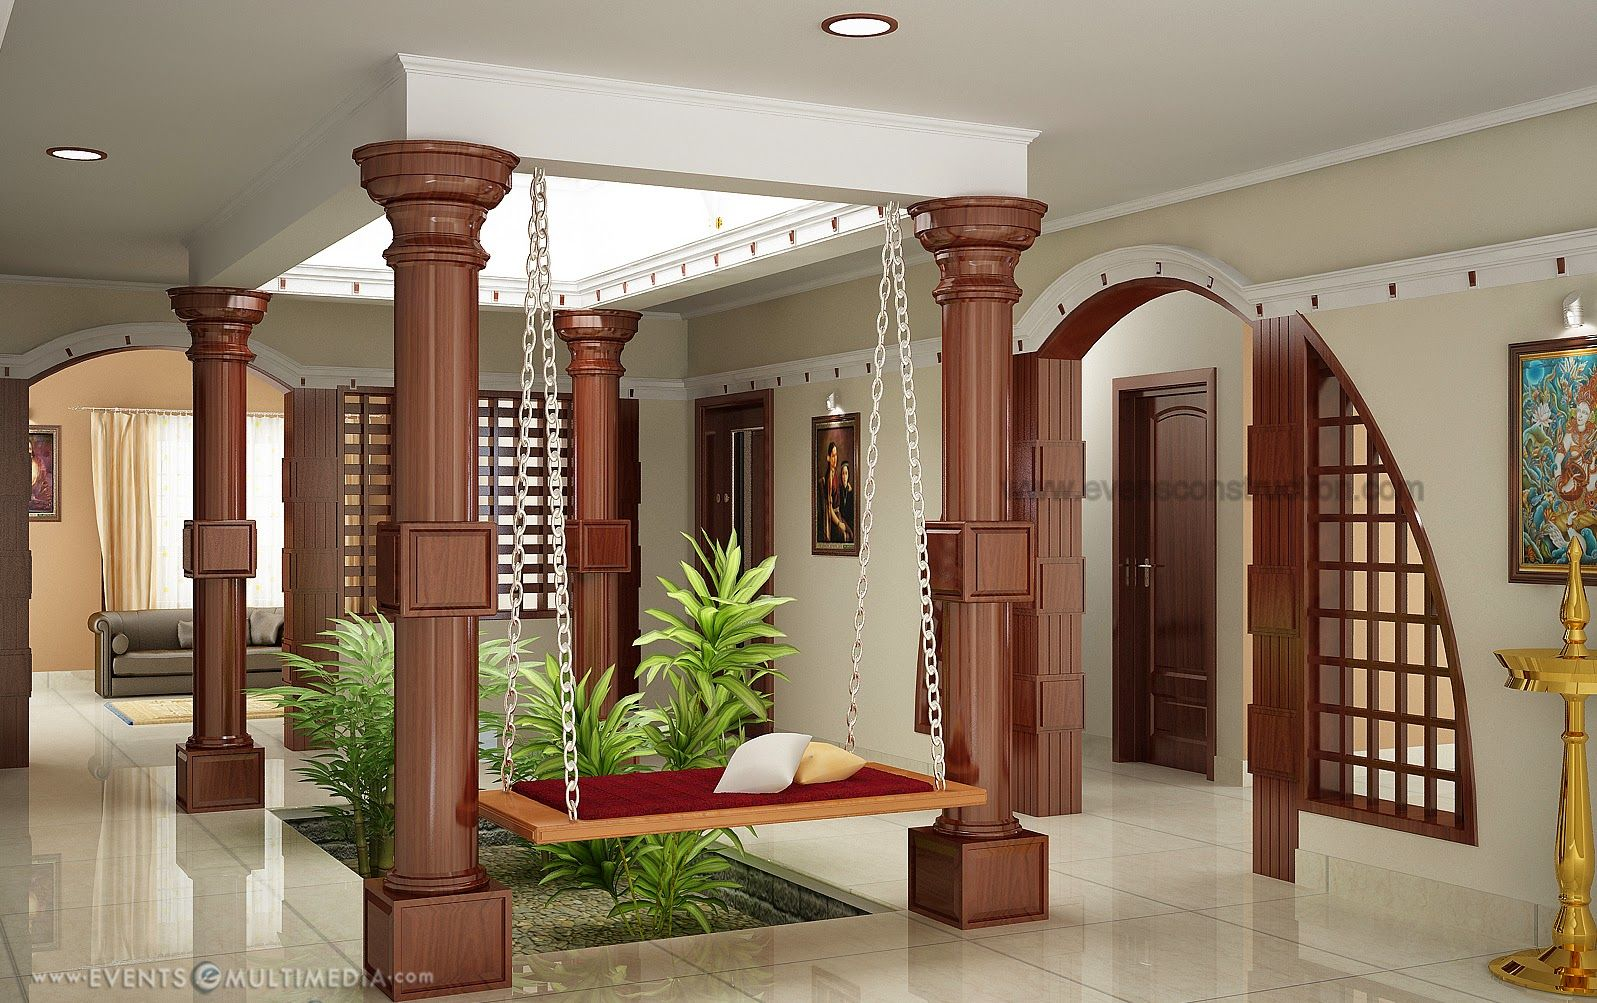 Interior design kerala google search inside and for Interior courtyard design ideas